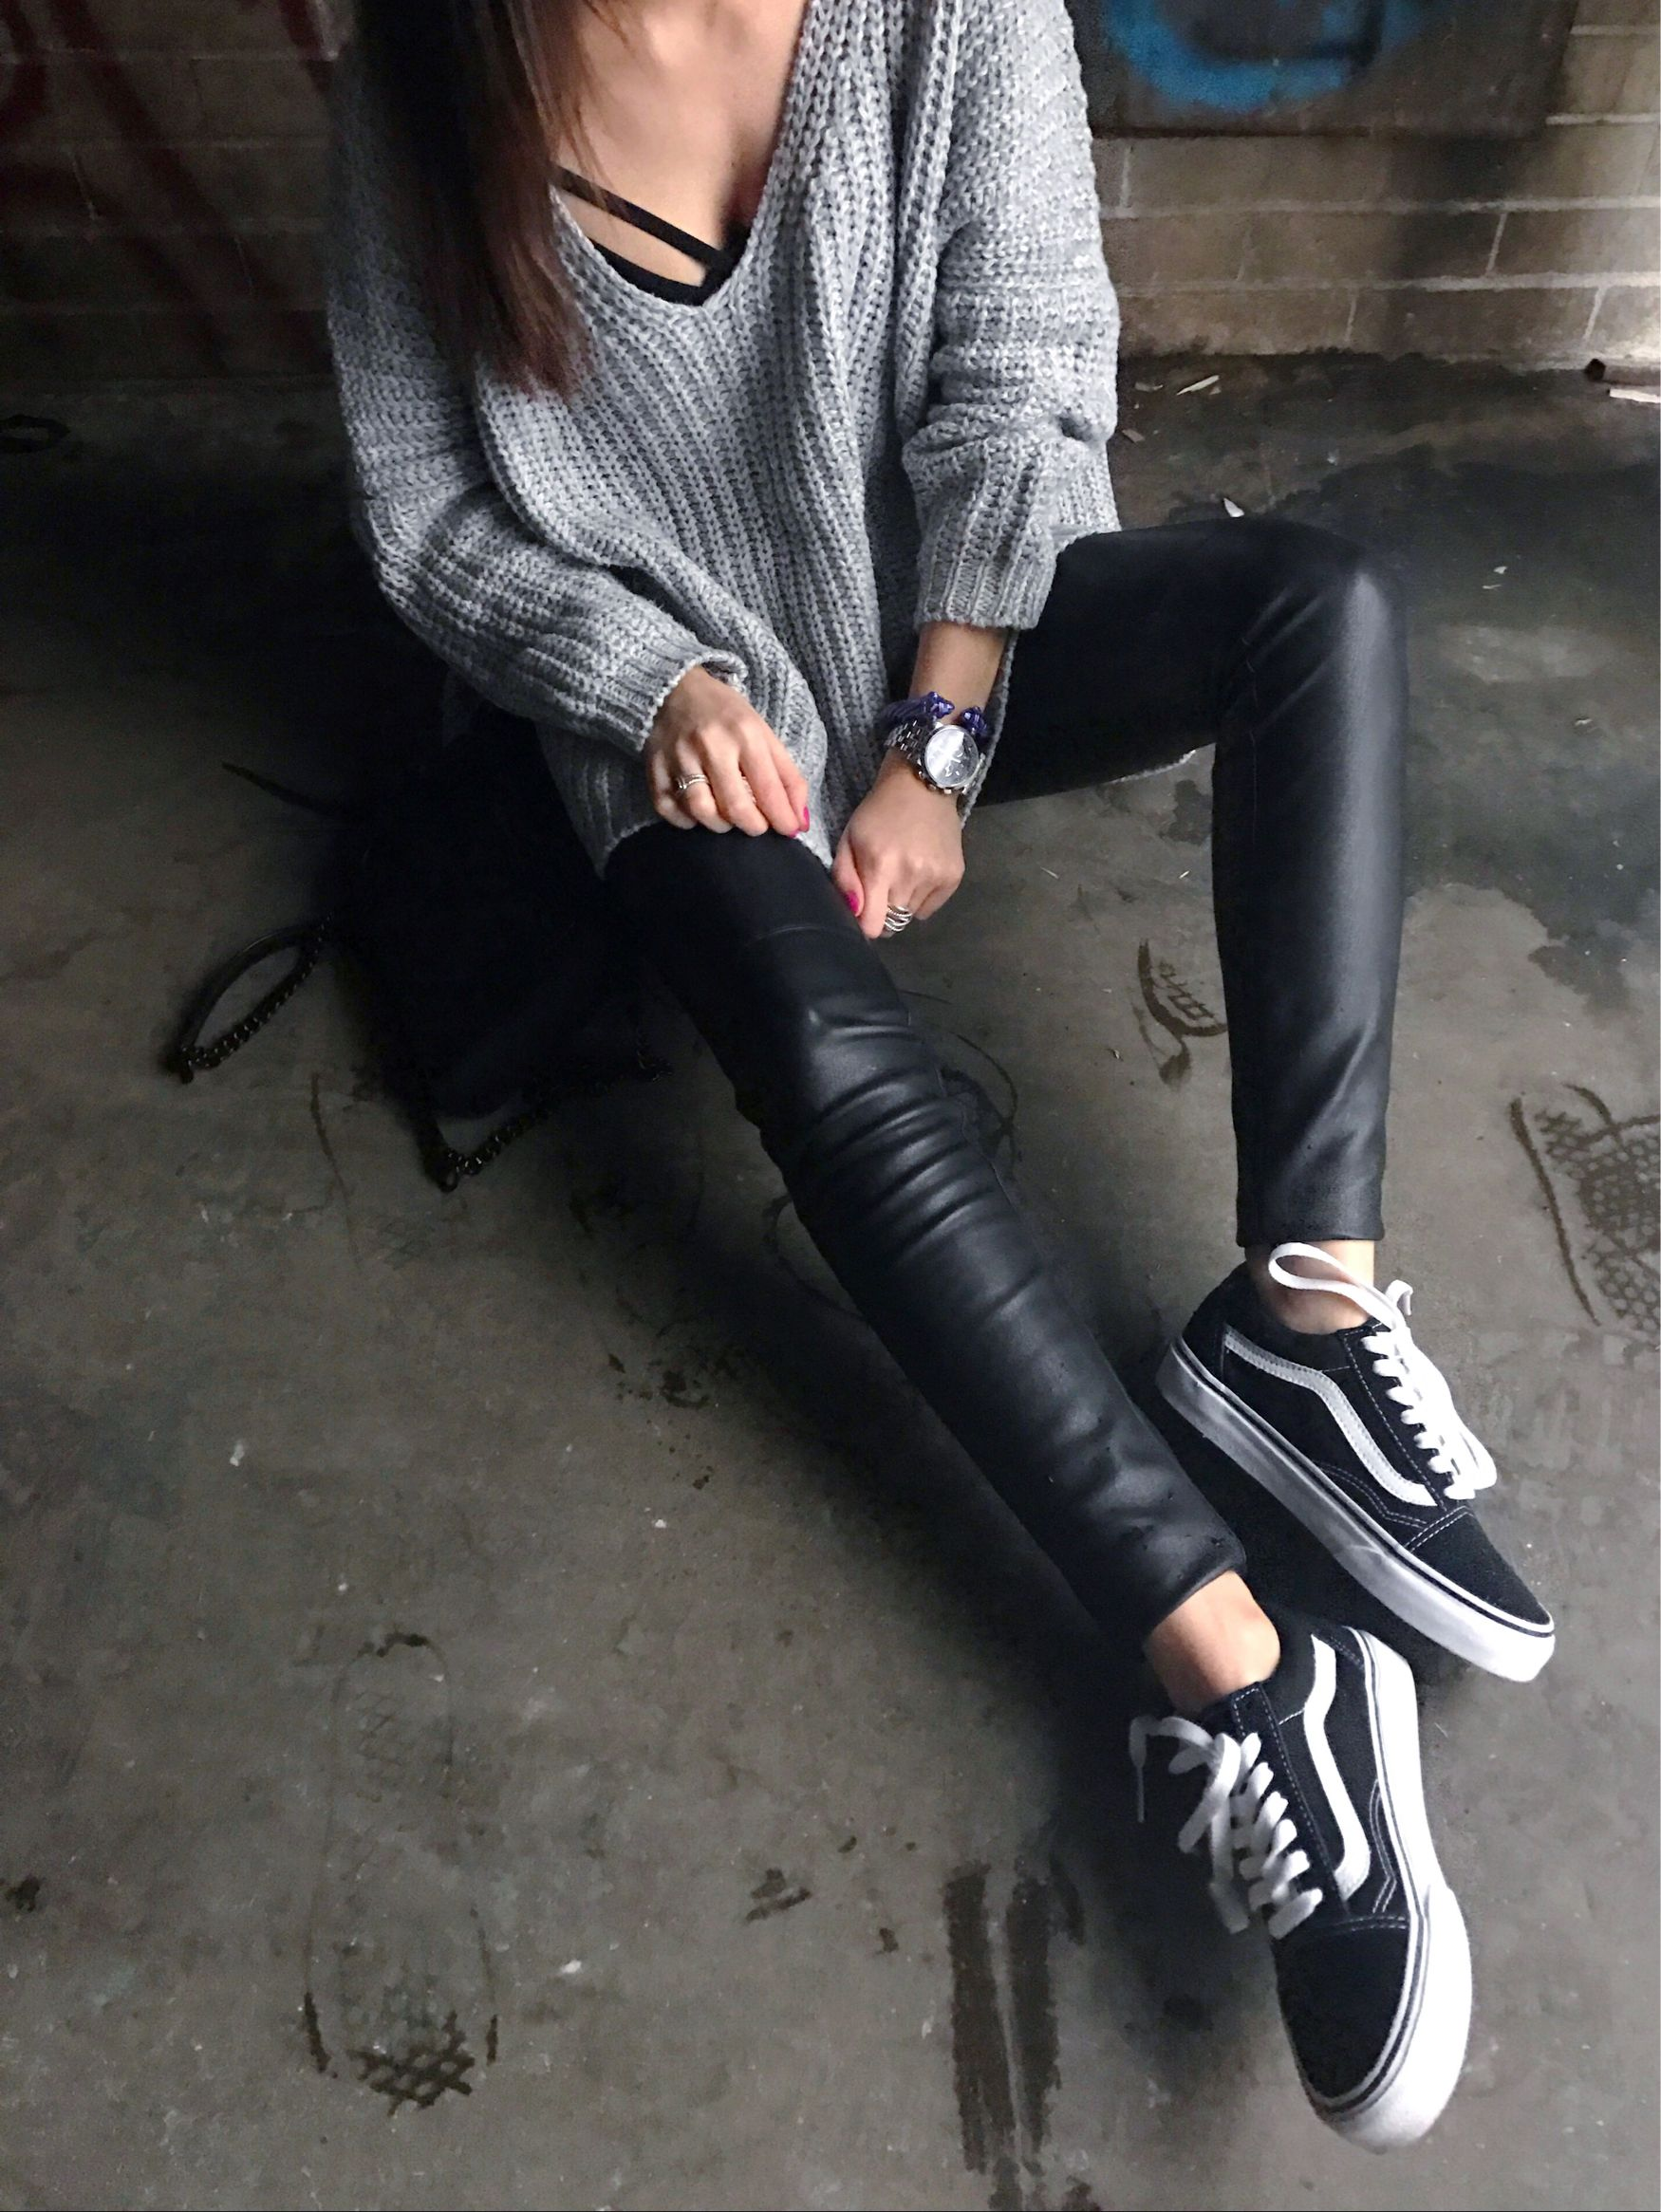 Vans Old Skool Sneakers || Another Casual Outfit